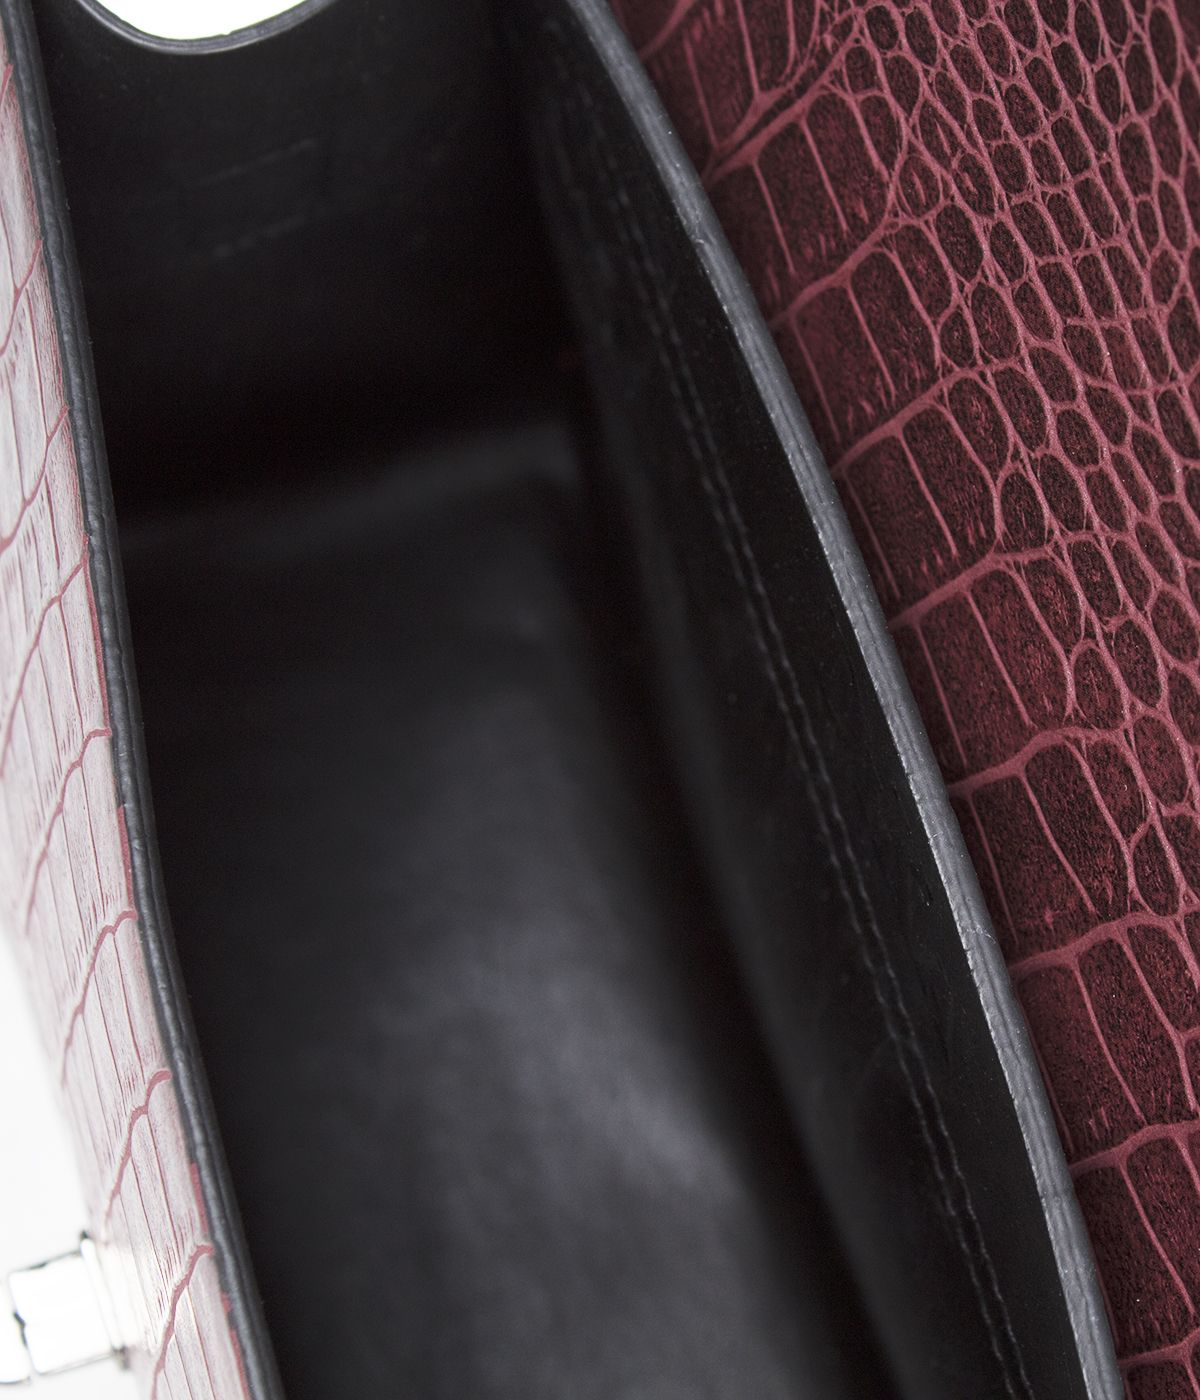 LEATHER BORDO  BAG WITH SNAKE SKIN IMITATION  3